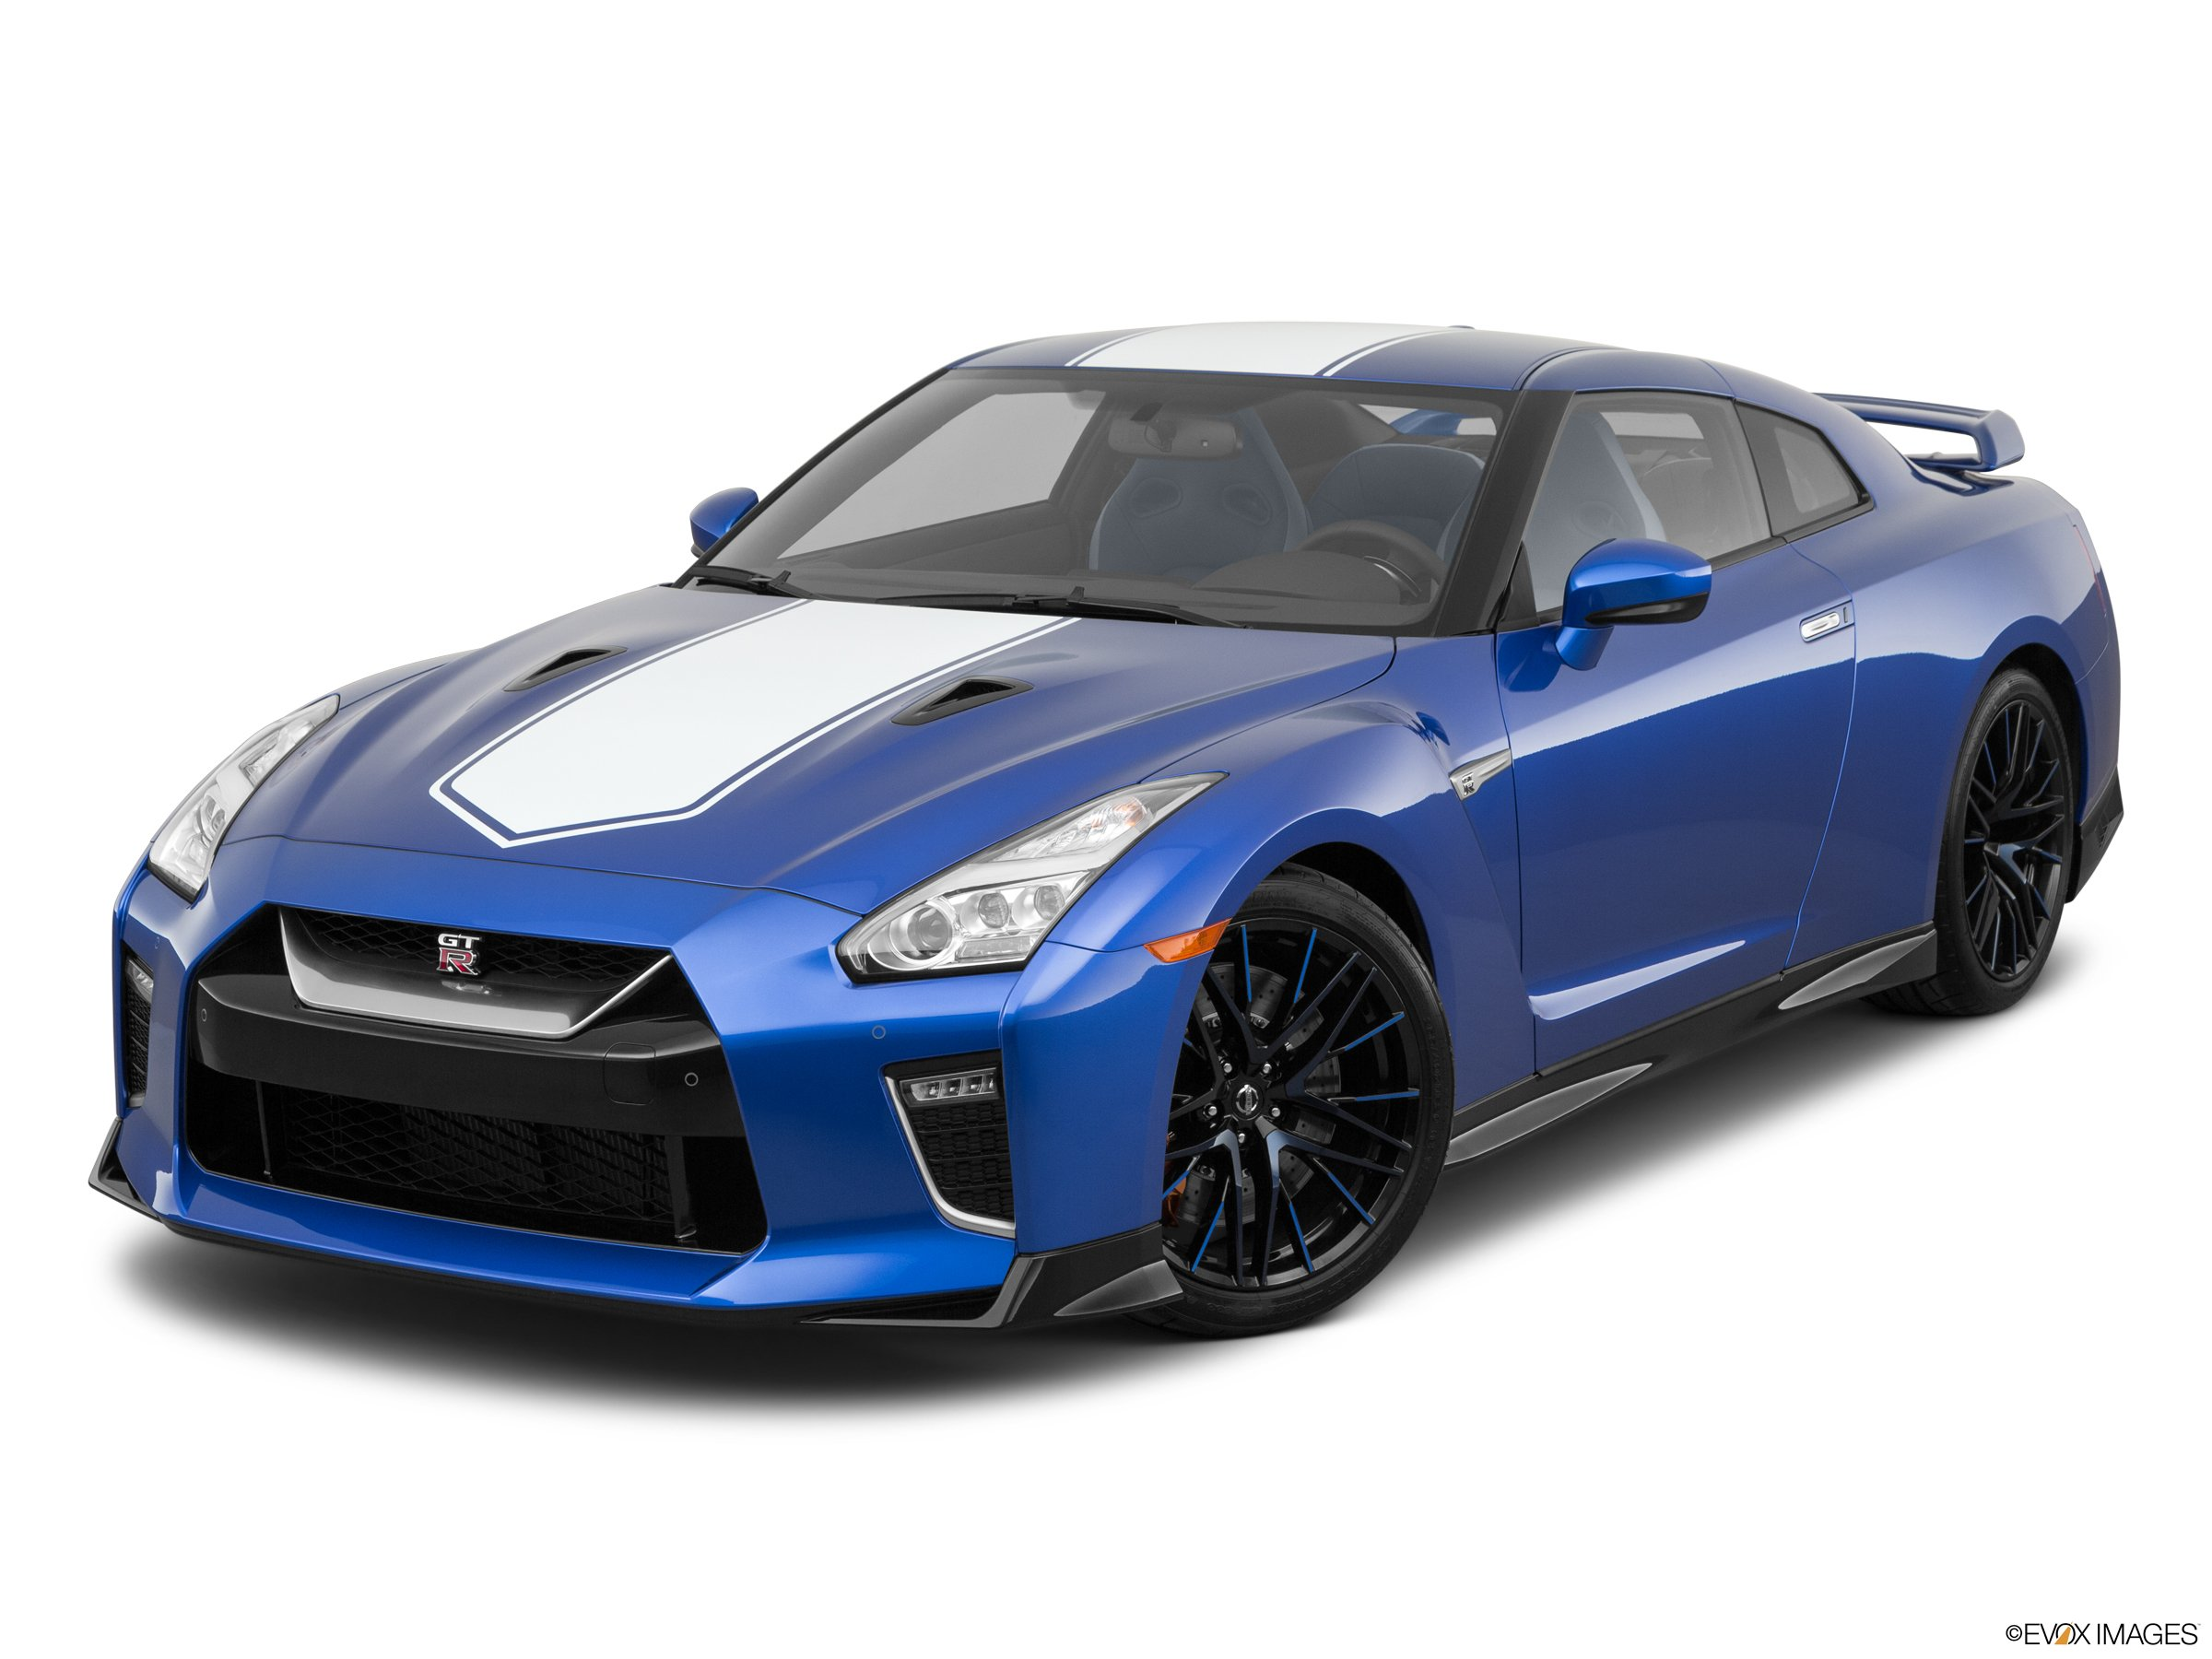 2020 Nissan GT-R Premium 50th Anniversary AWD coupe